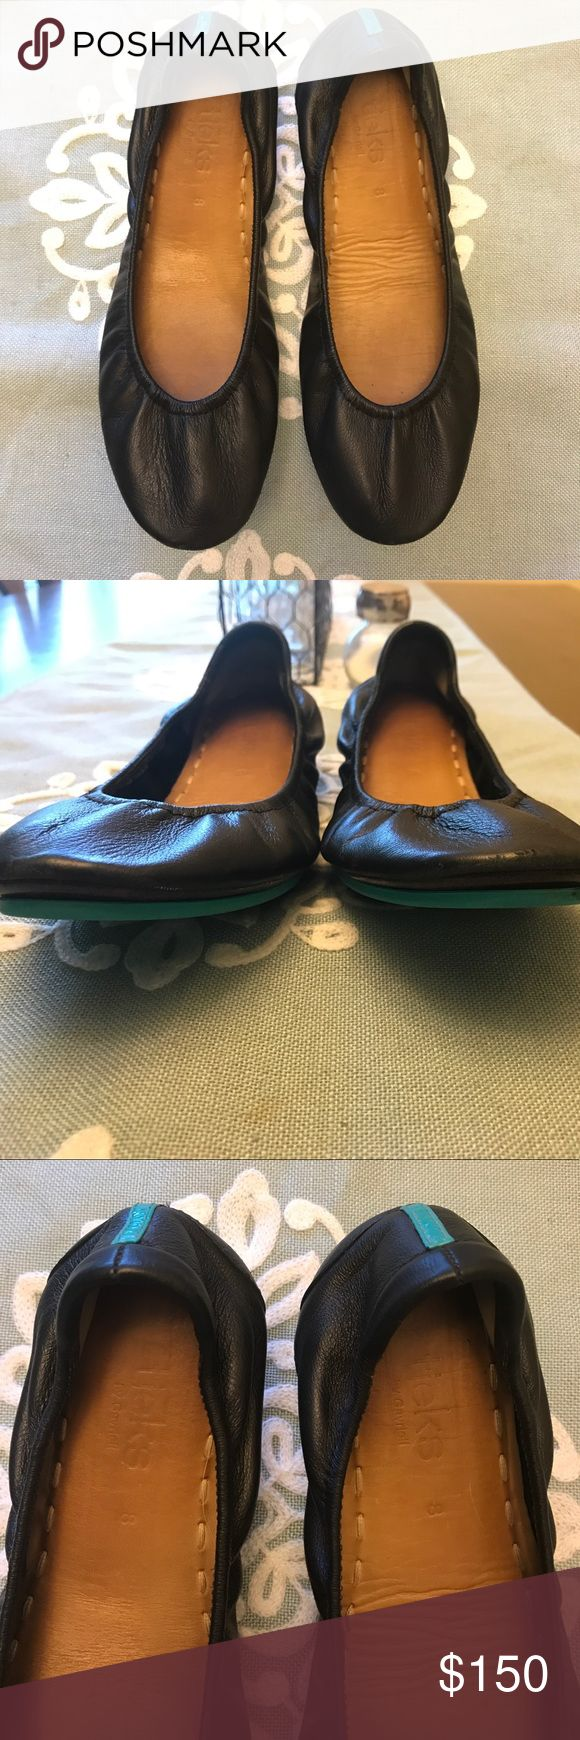 Matte Black Tieks Classic black mattes! Good condition with some small scuffs on the right heel  from driving. For sale or possibly trade ONLy for one of these colors in good condition: ballerina pink, fuschia, taupe, feather grey, or cobalt. Thanks for looking! Tieks Shoes